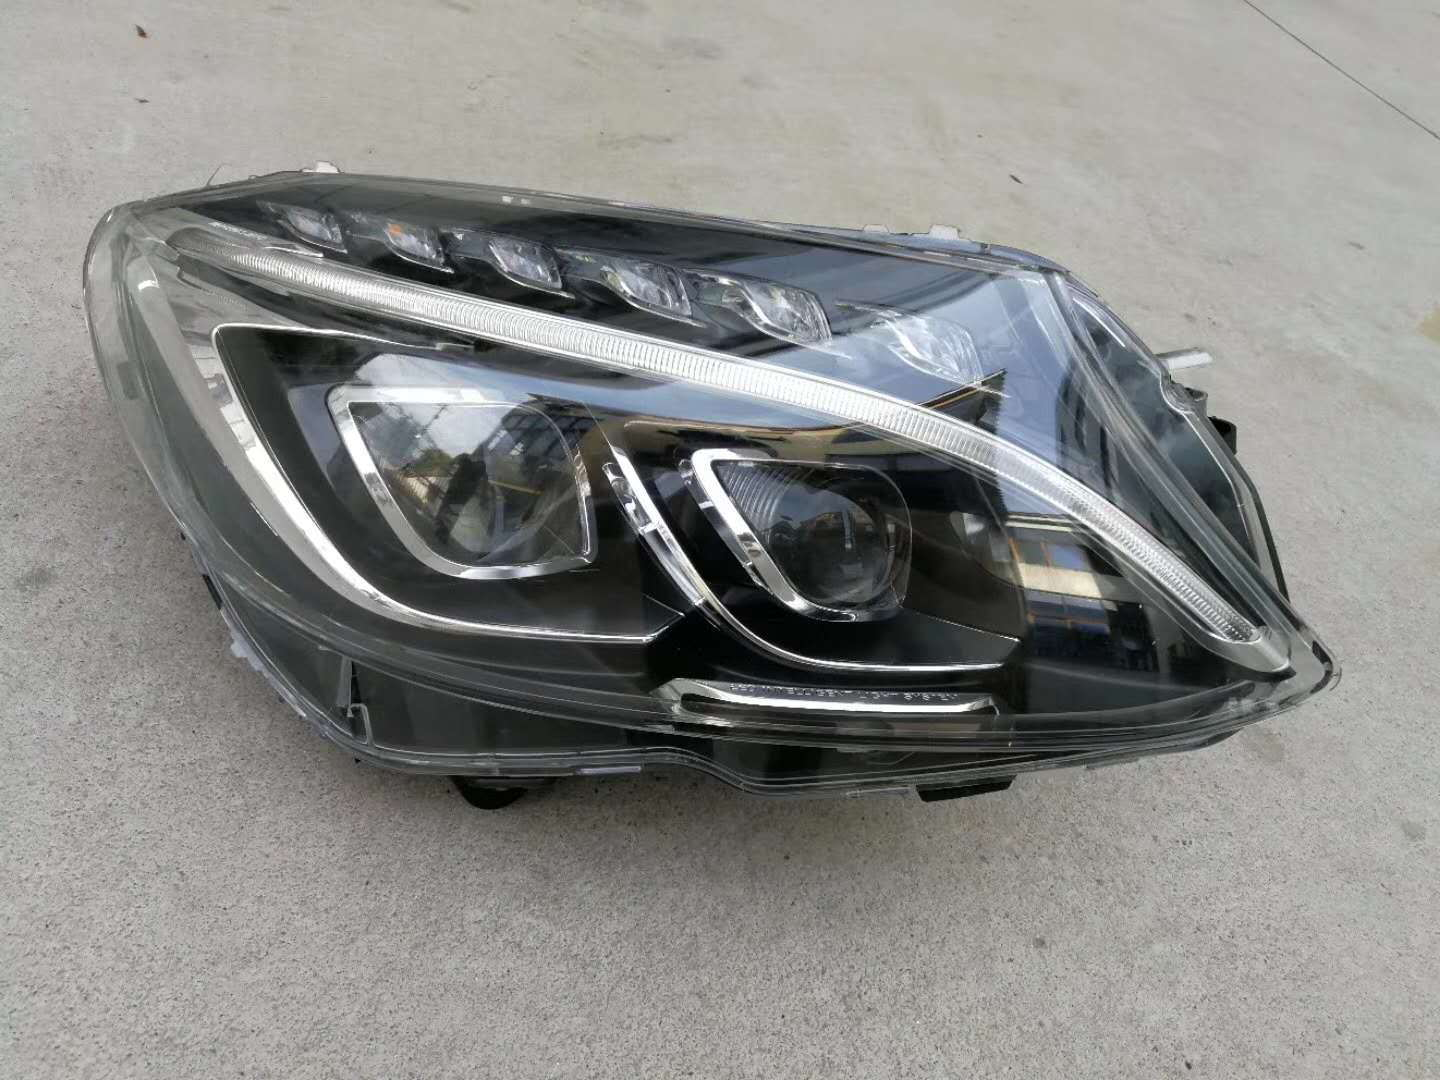 W205 Halogen to Dual LED, Plug & Play Project Done - MBWorld